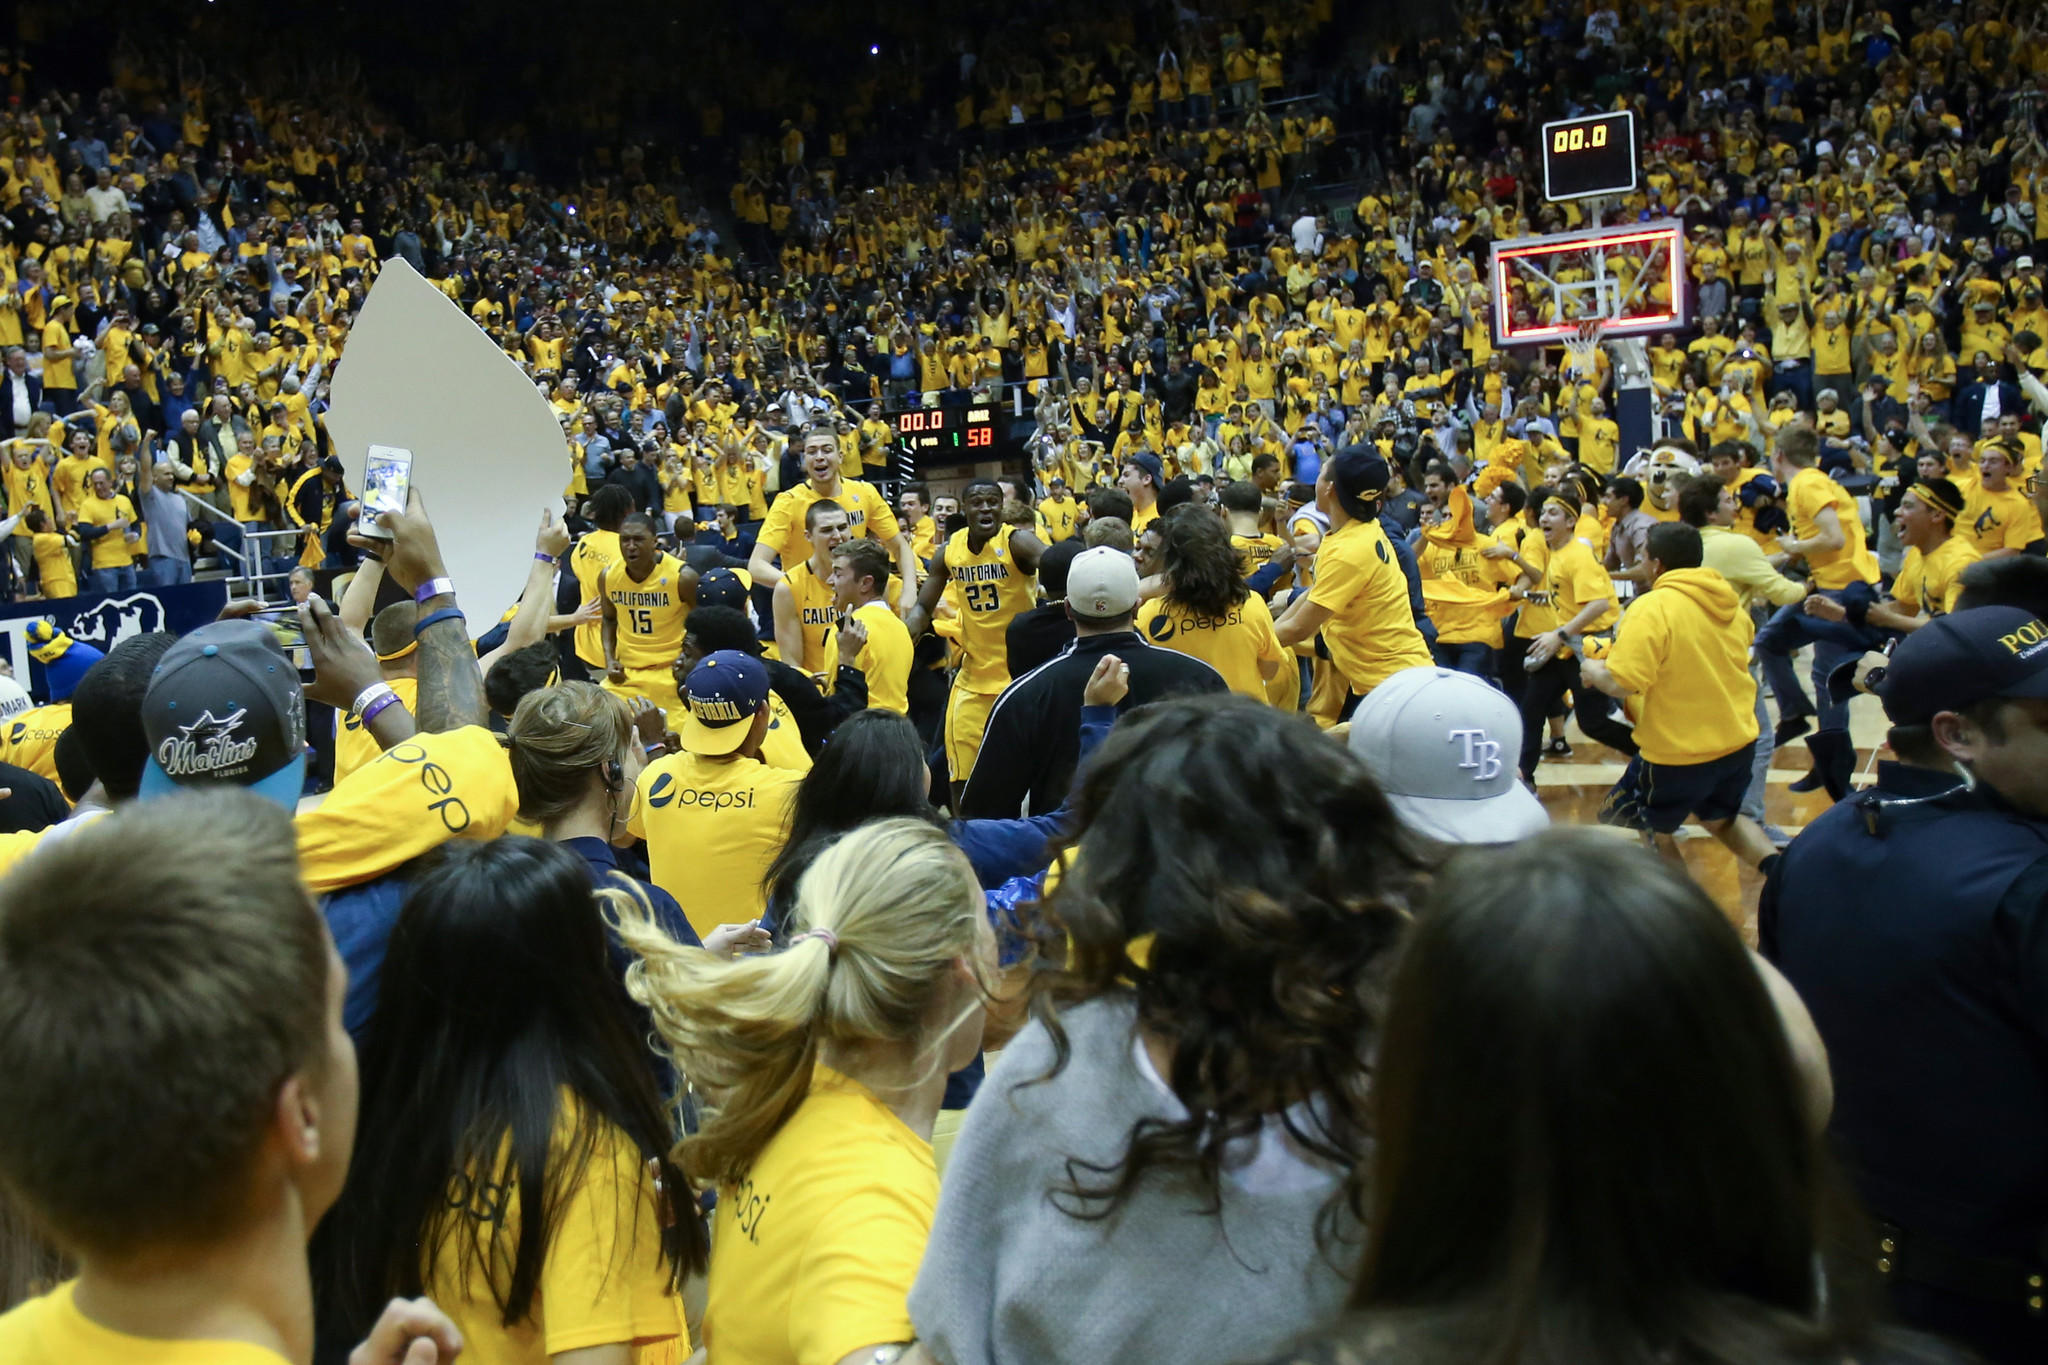 California fans rush the court to celebrate with players.